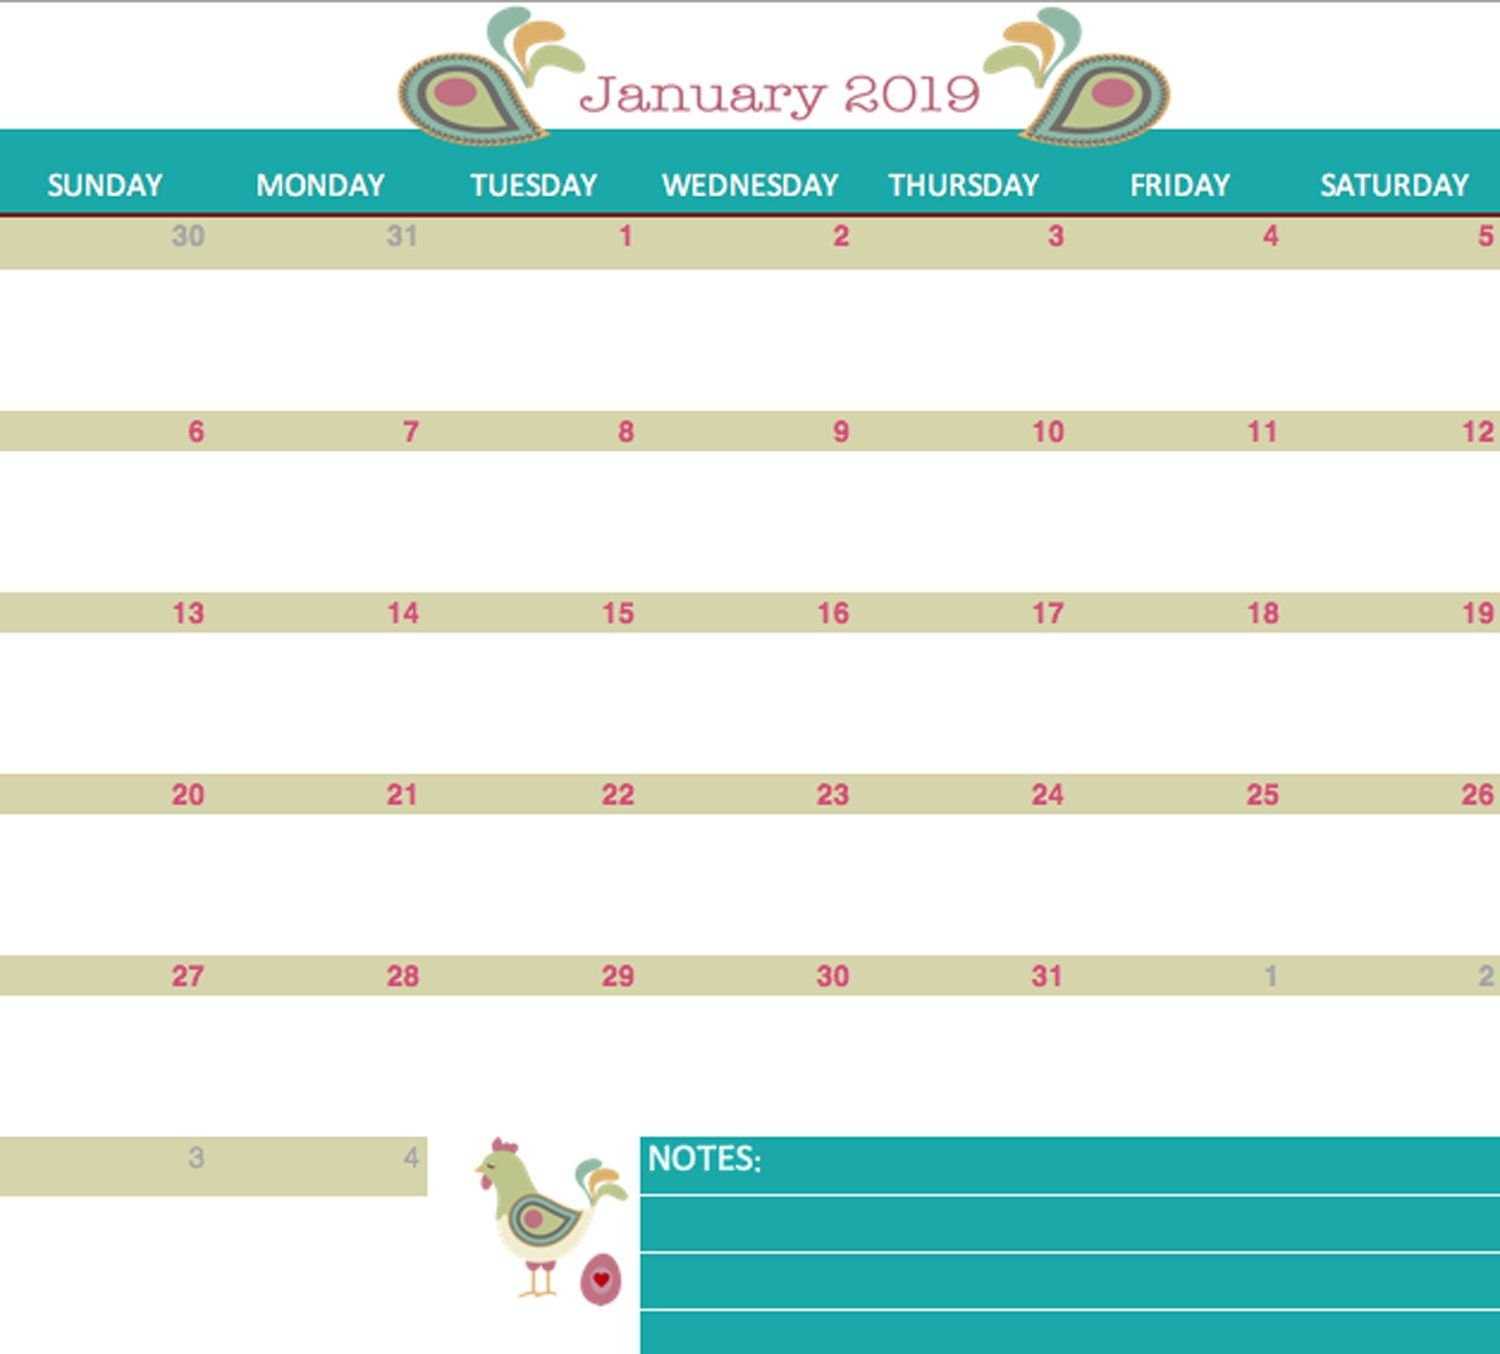 Any Year 2019 And Beyond Spring Chicken 12 Month Calendar 5 Day Calendar Excel